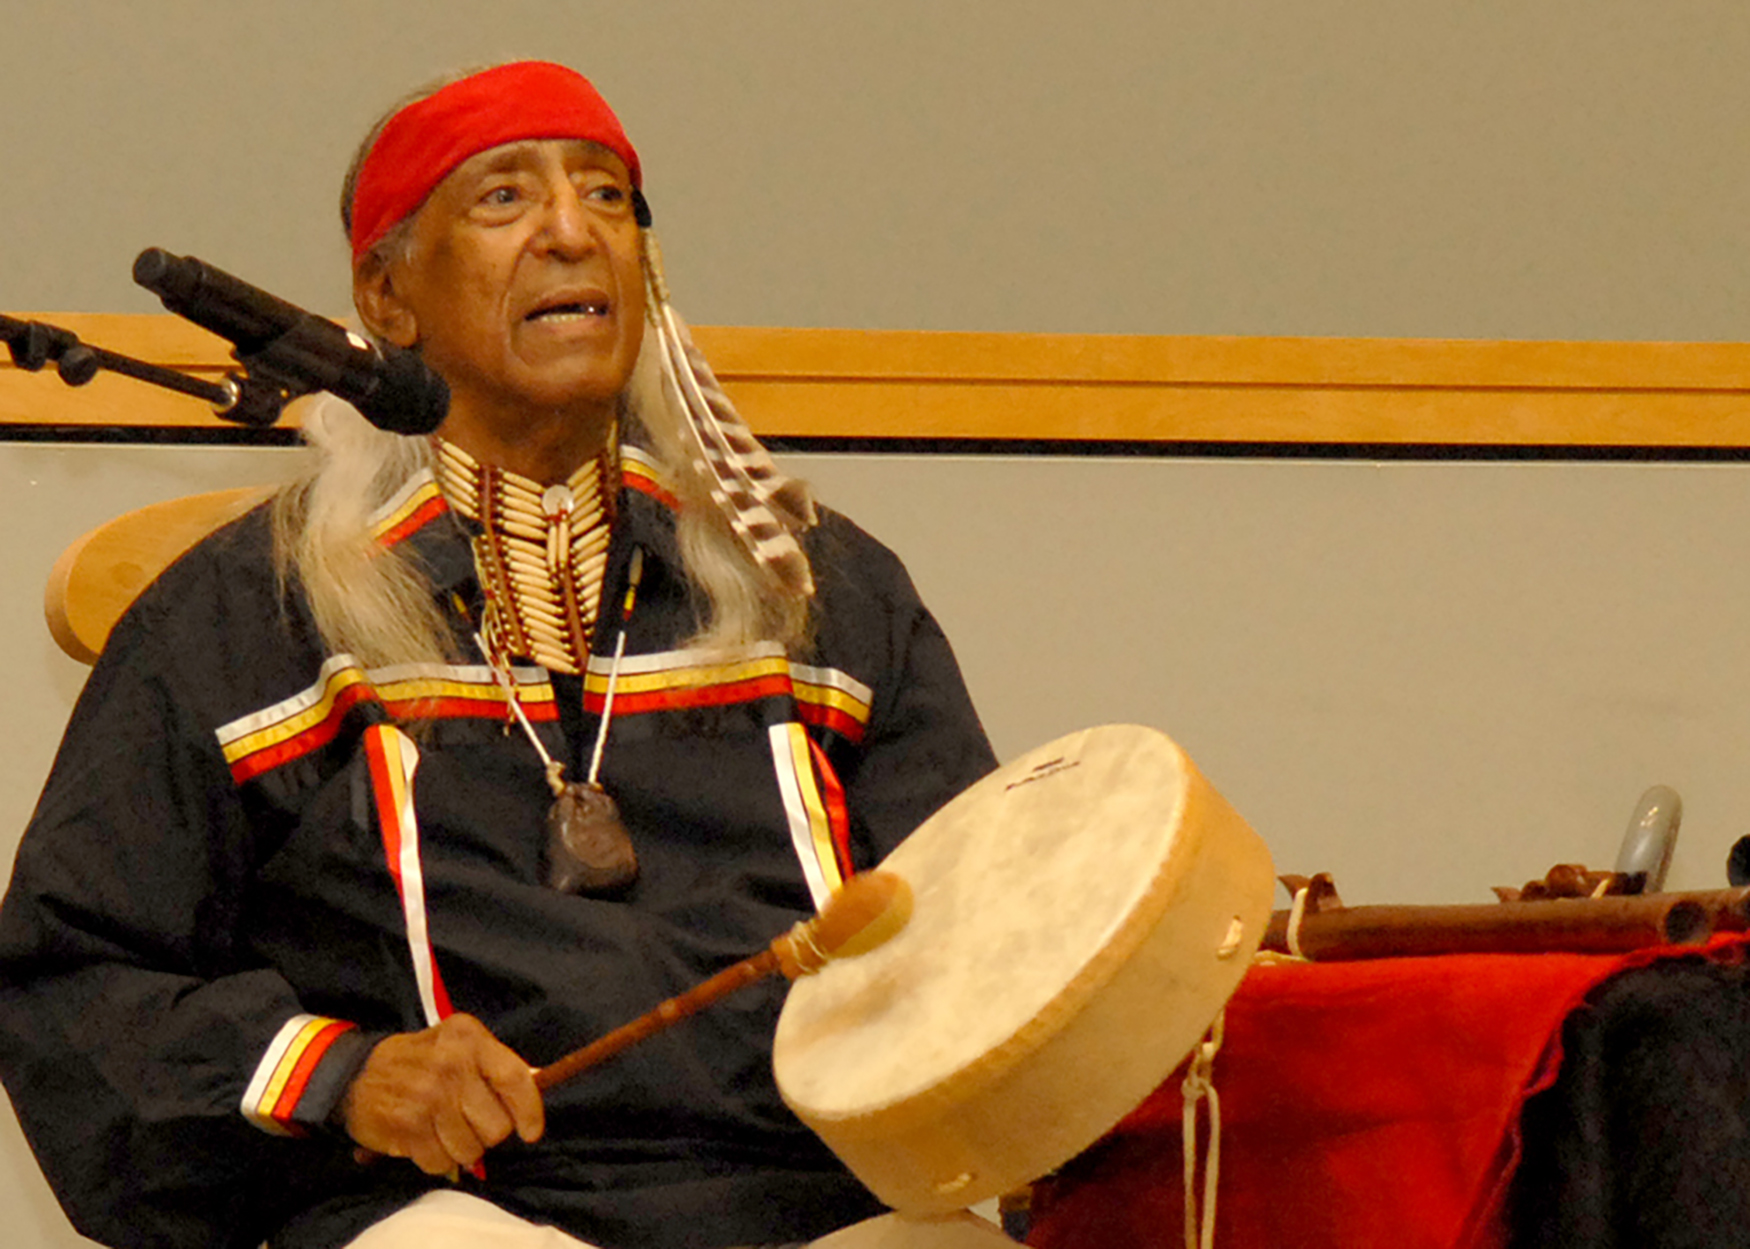 American Indian speaker encourages unity and acceptance of all people